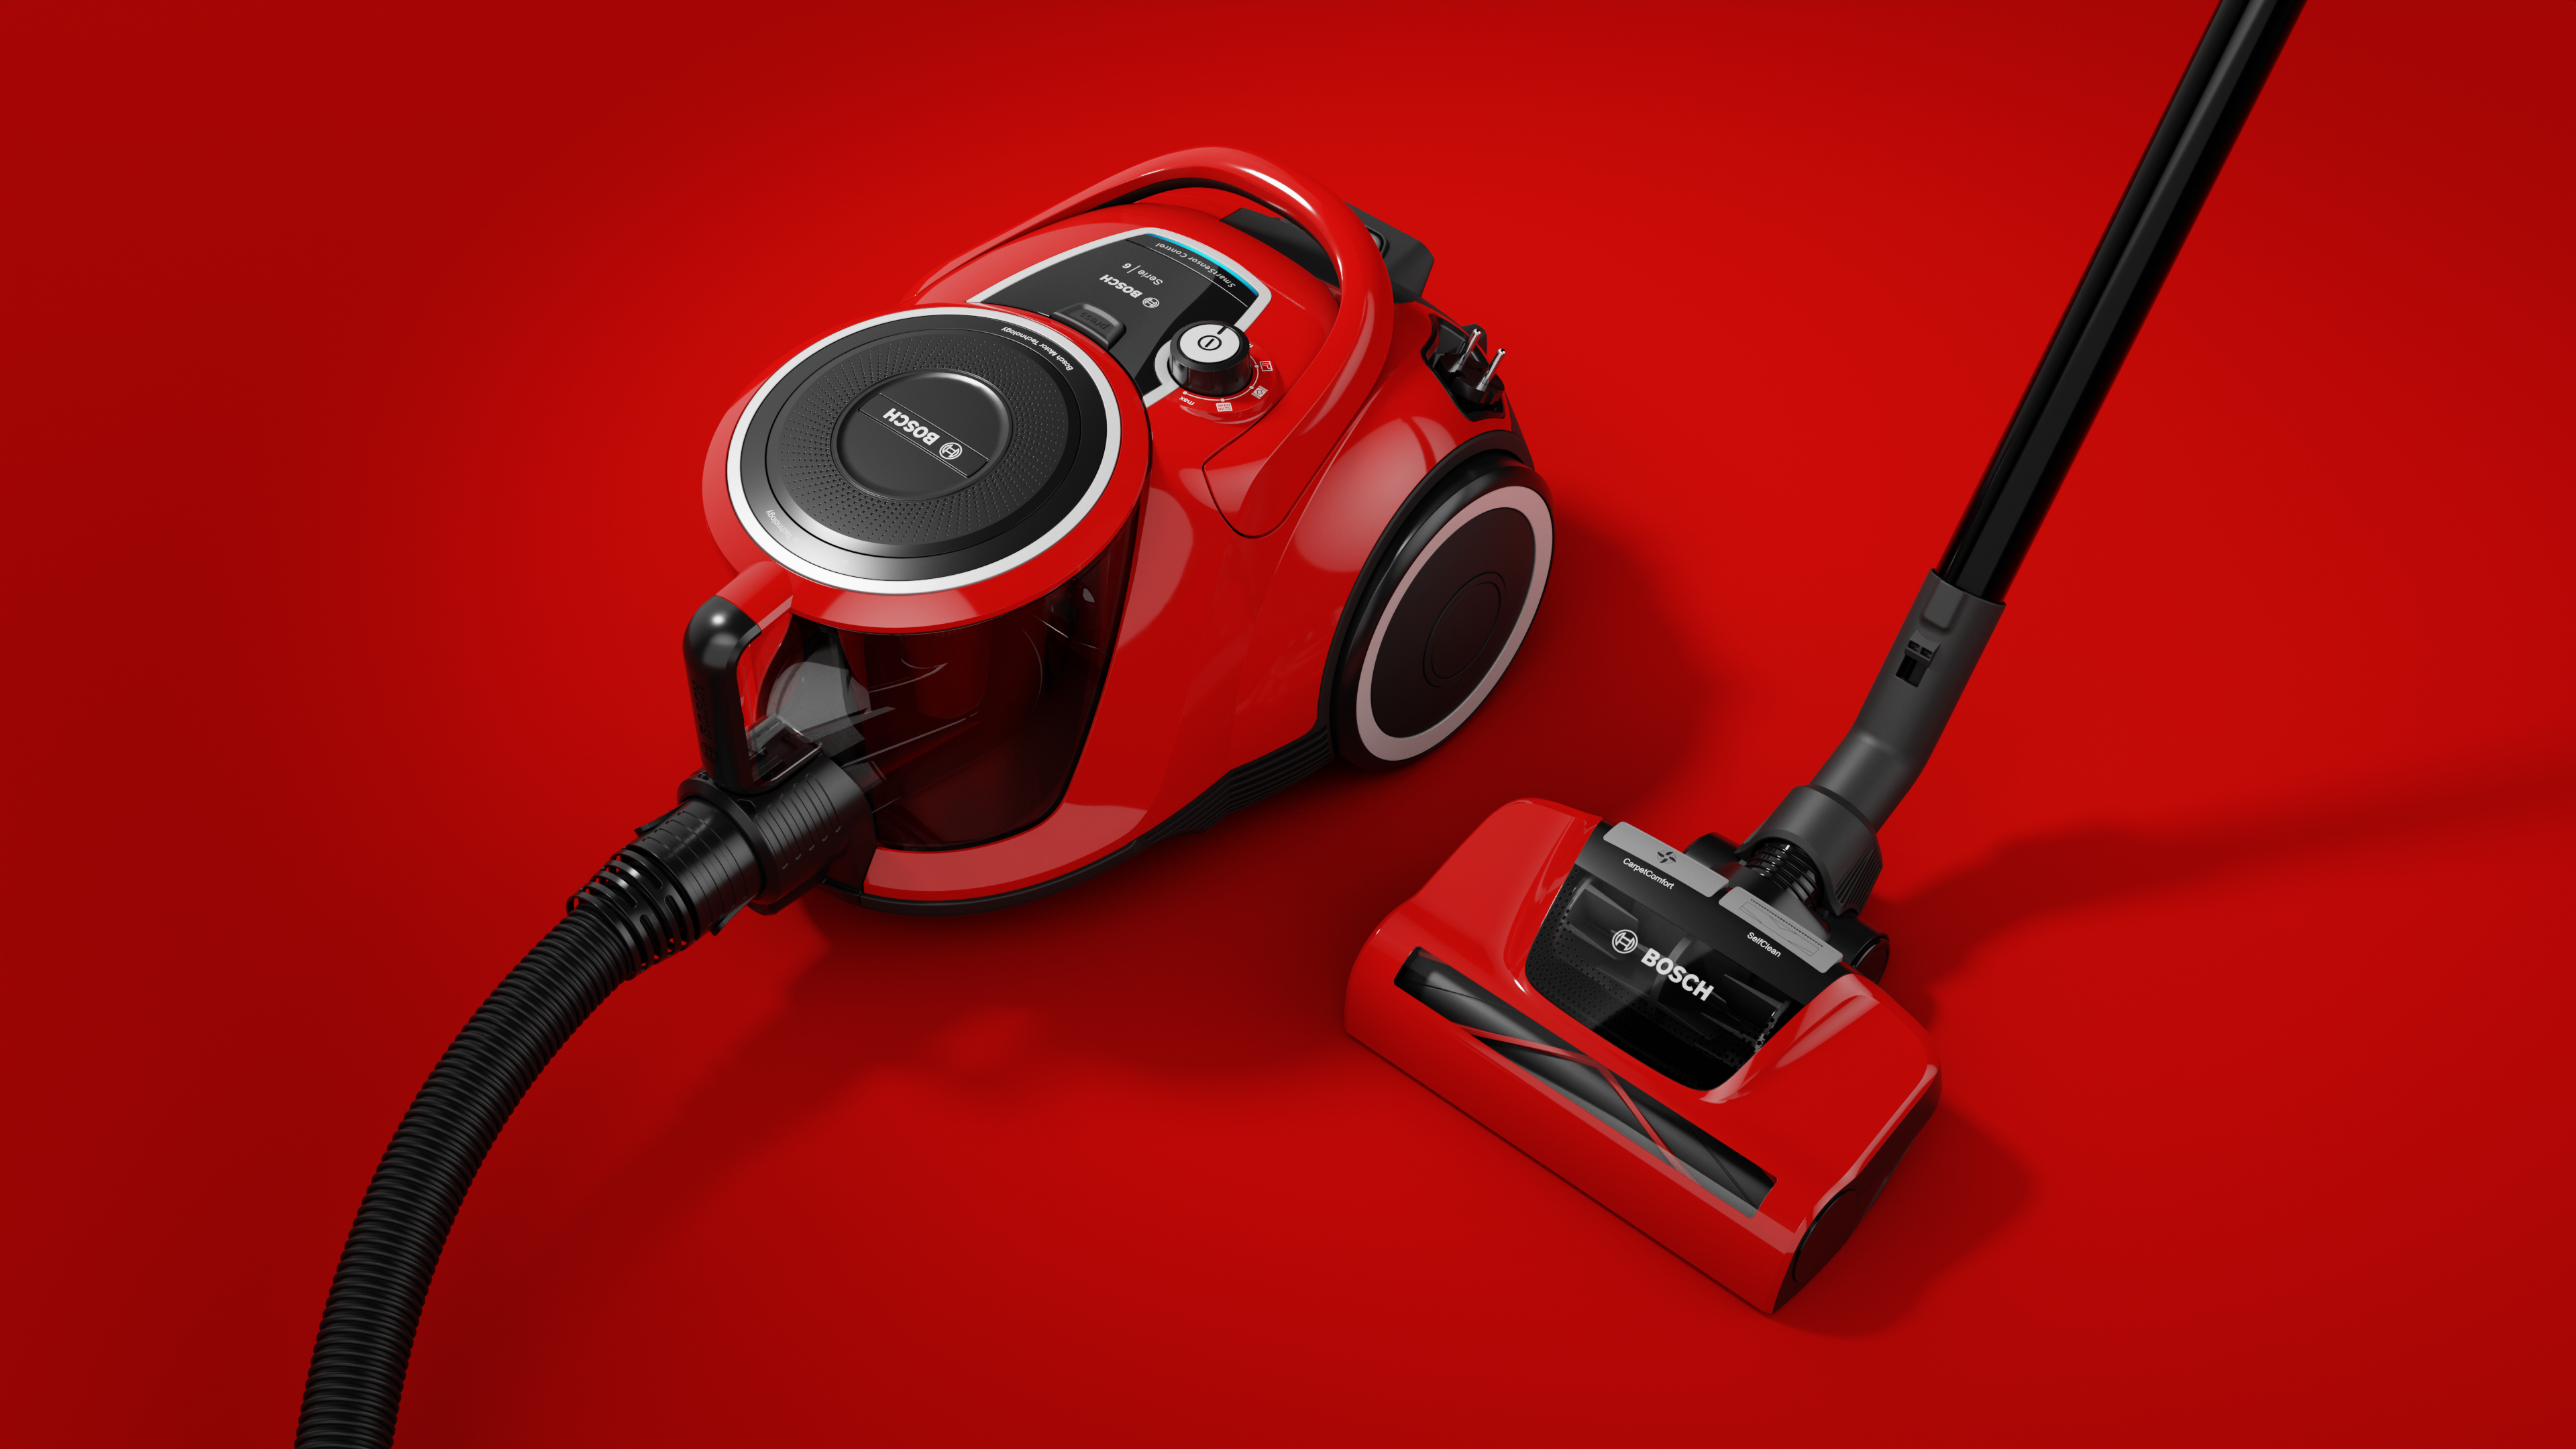 red bosch vacuum cleaner on red ground perspective view